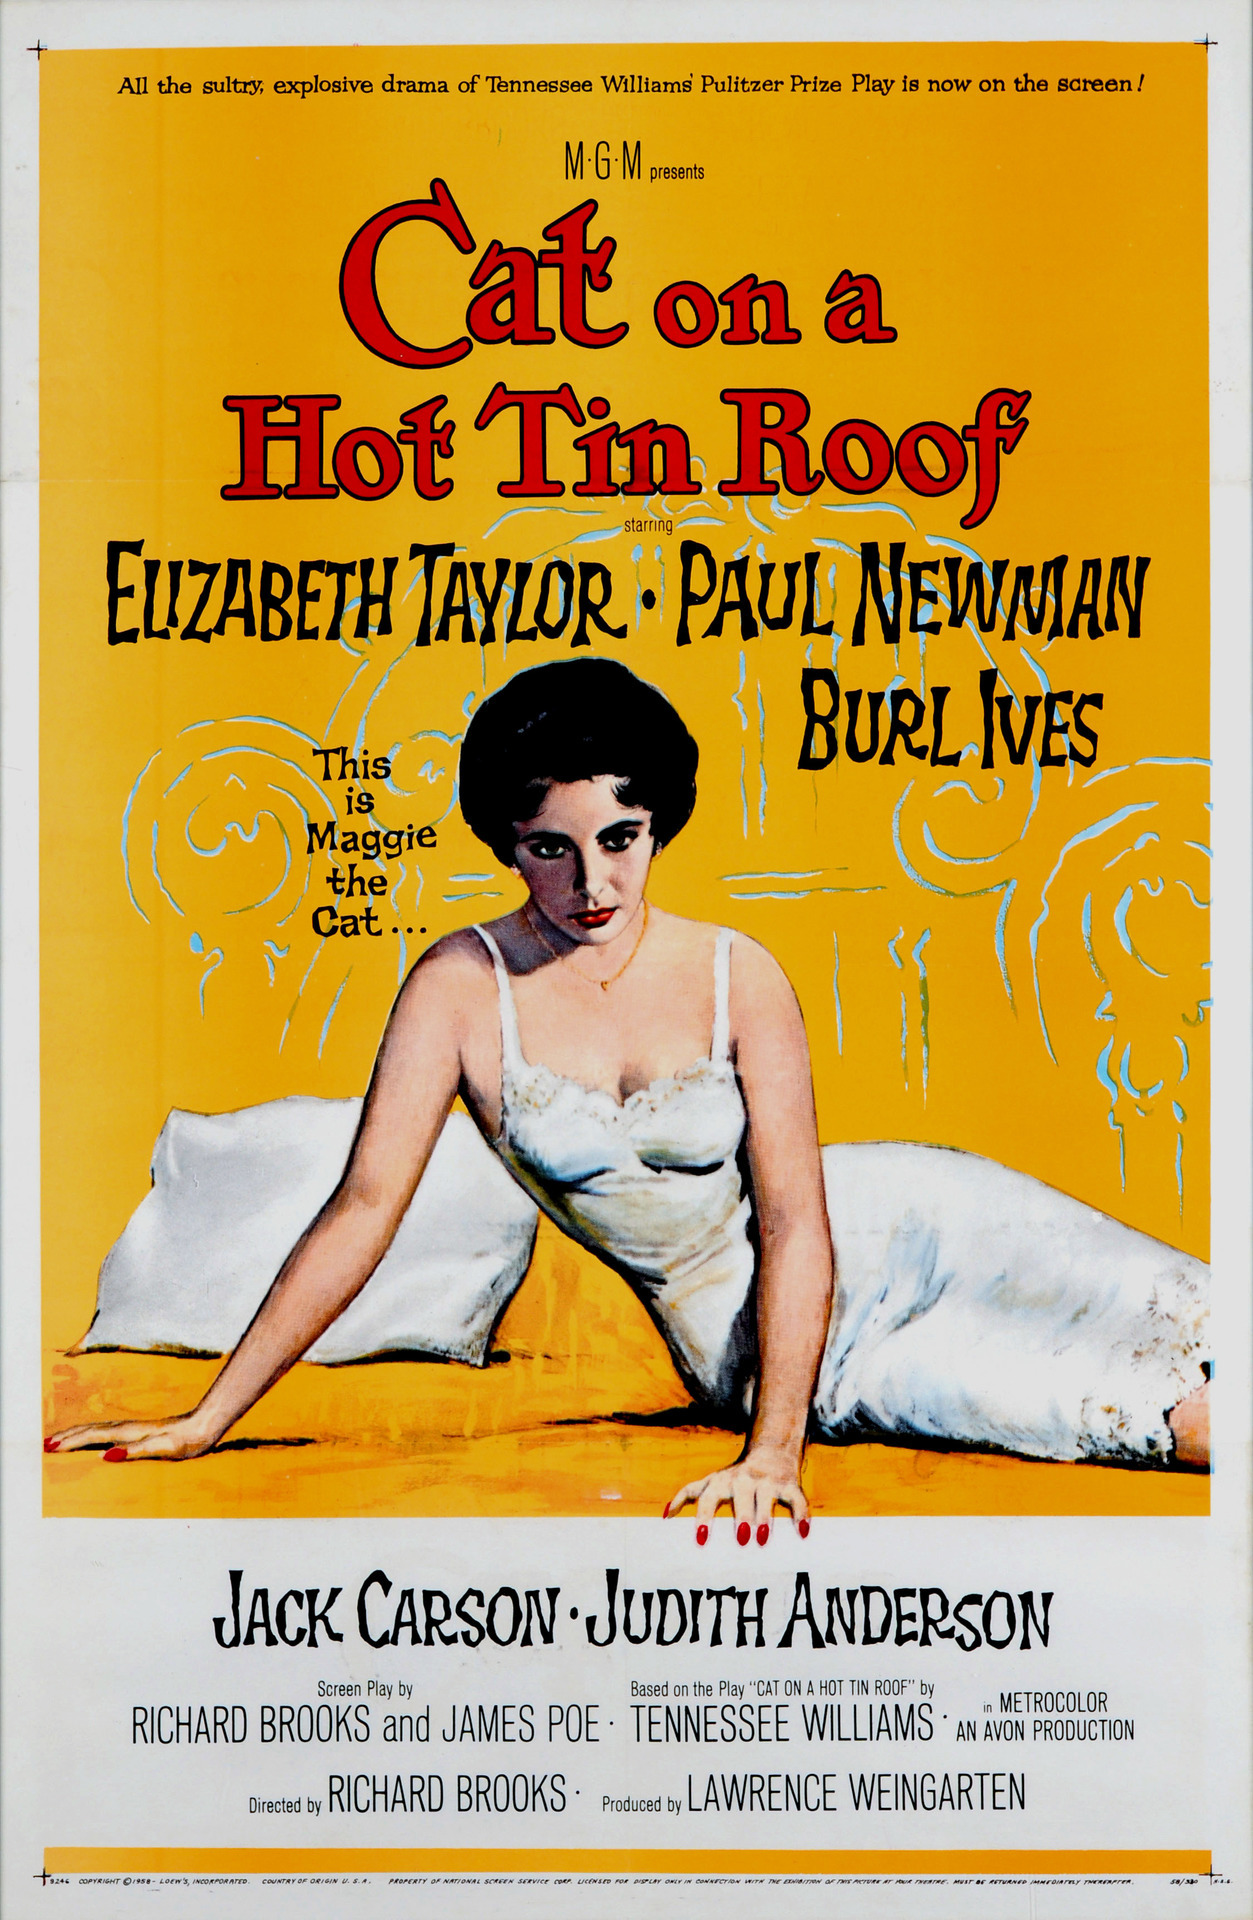 cat-on-a-hot-tin-roof-us-movie-poster.jpg